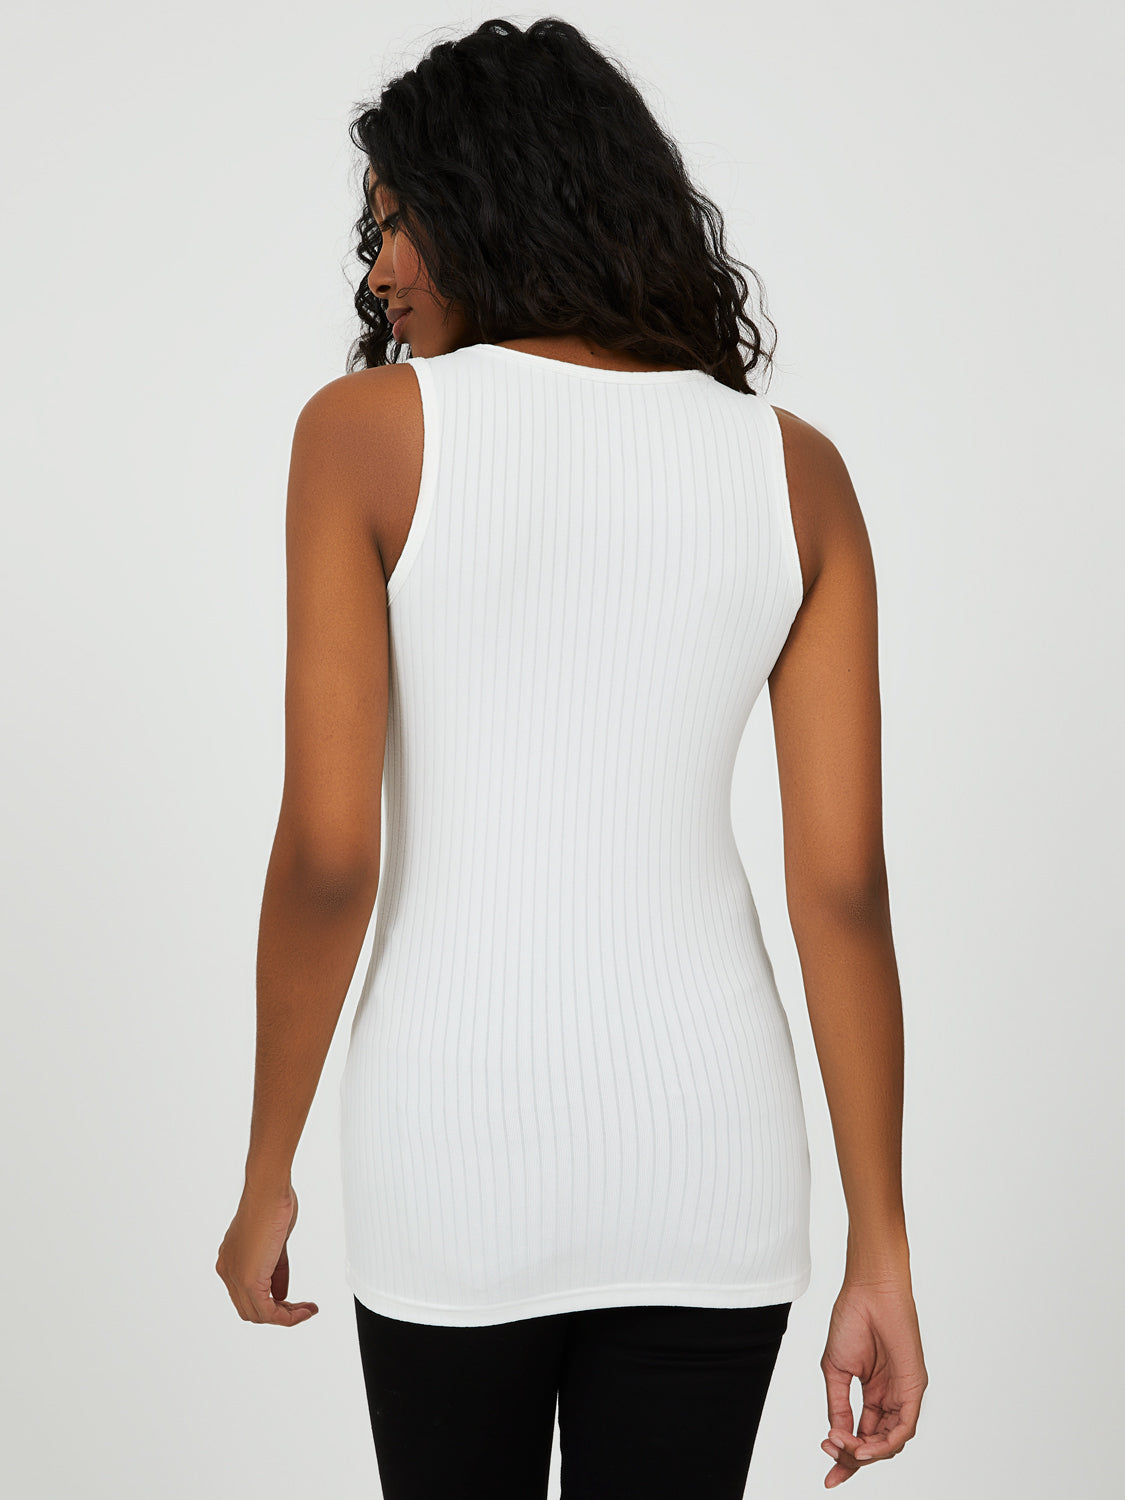 Rib Knit Tunic Tank Top